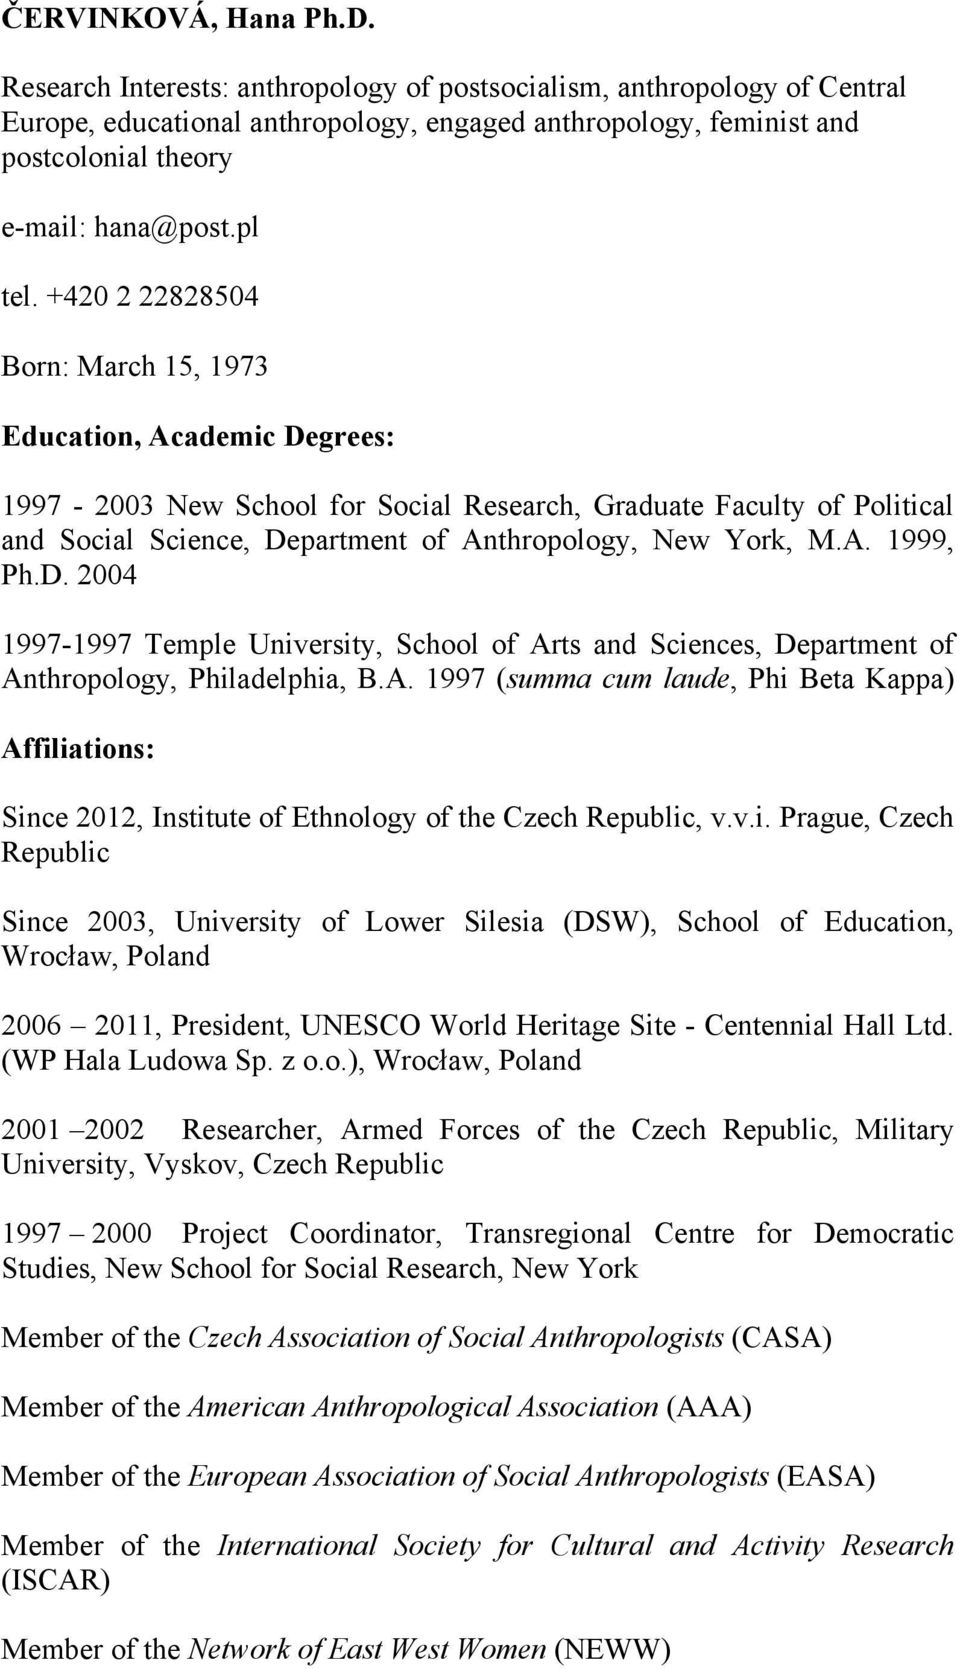 +420 2 22828504 Born: March 15, 1973 Education, Academic Degrees: 1997-2003 New School for Social Research, Graduate Faculty of Political and Social Science, Department of Anthropology, New York, M.A. 1999, Ph.